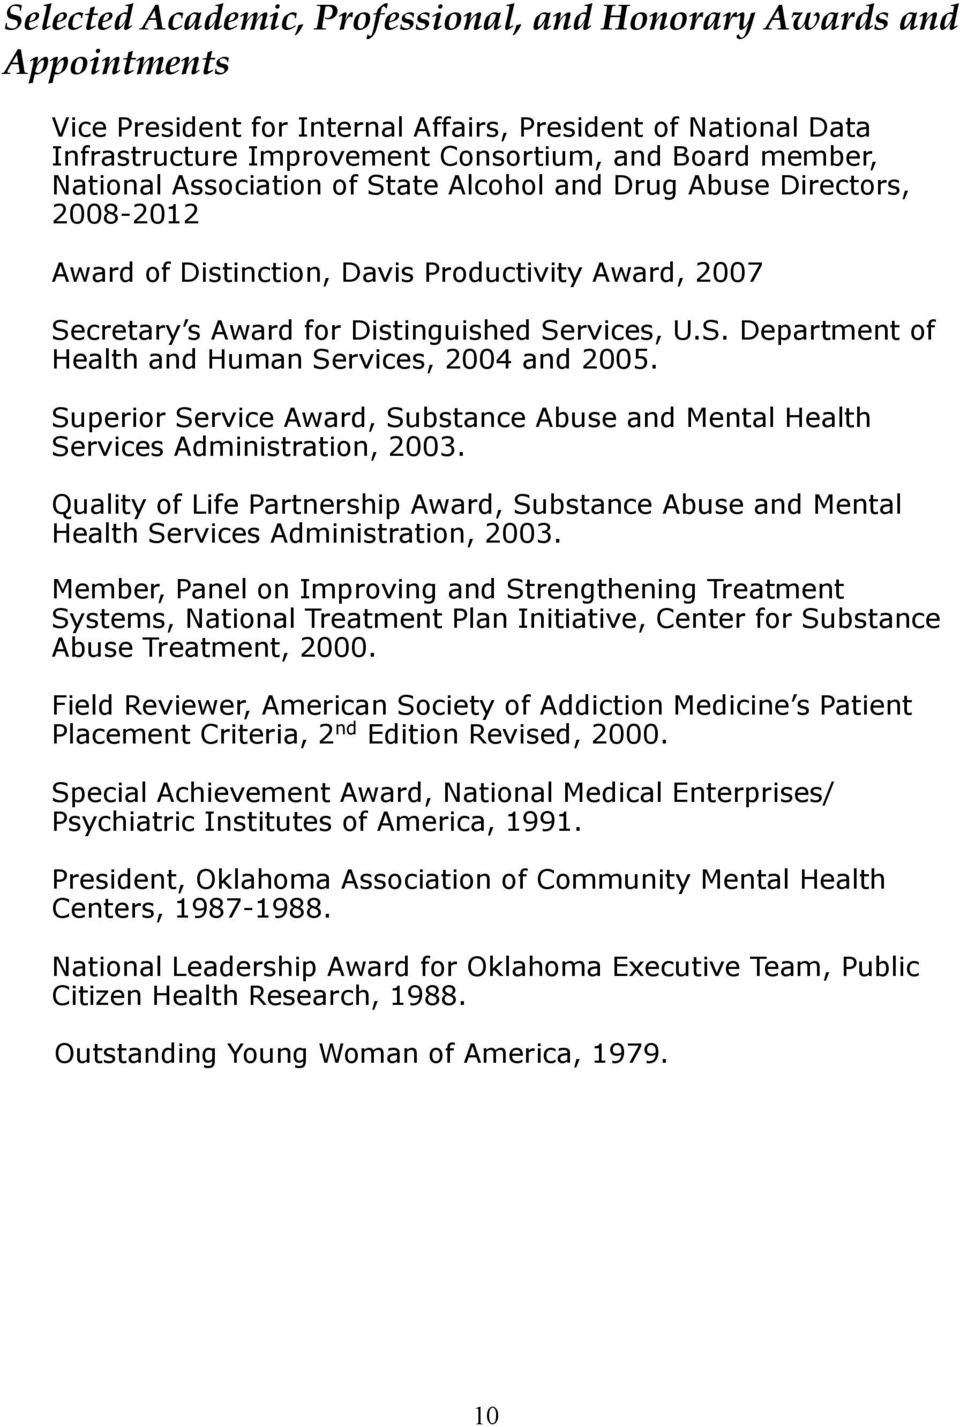 Superior Service Award, Substance Abuse and Mental Health Services Administration, 2003. Quality of Life Partnership Award, Substance Abuse and Mental Health Services Administration, 2003.